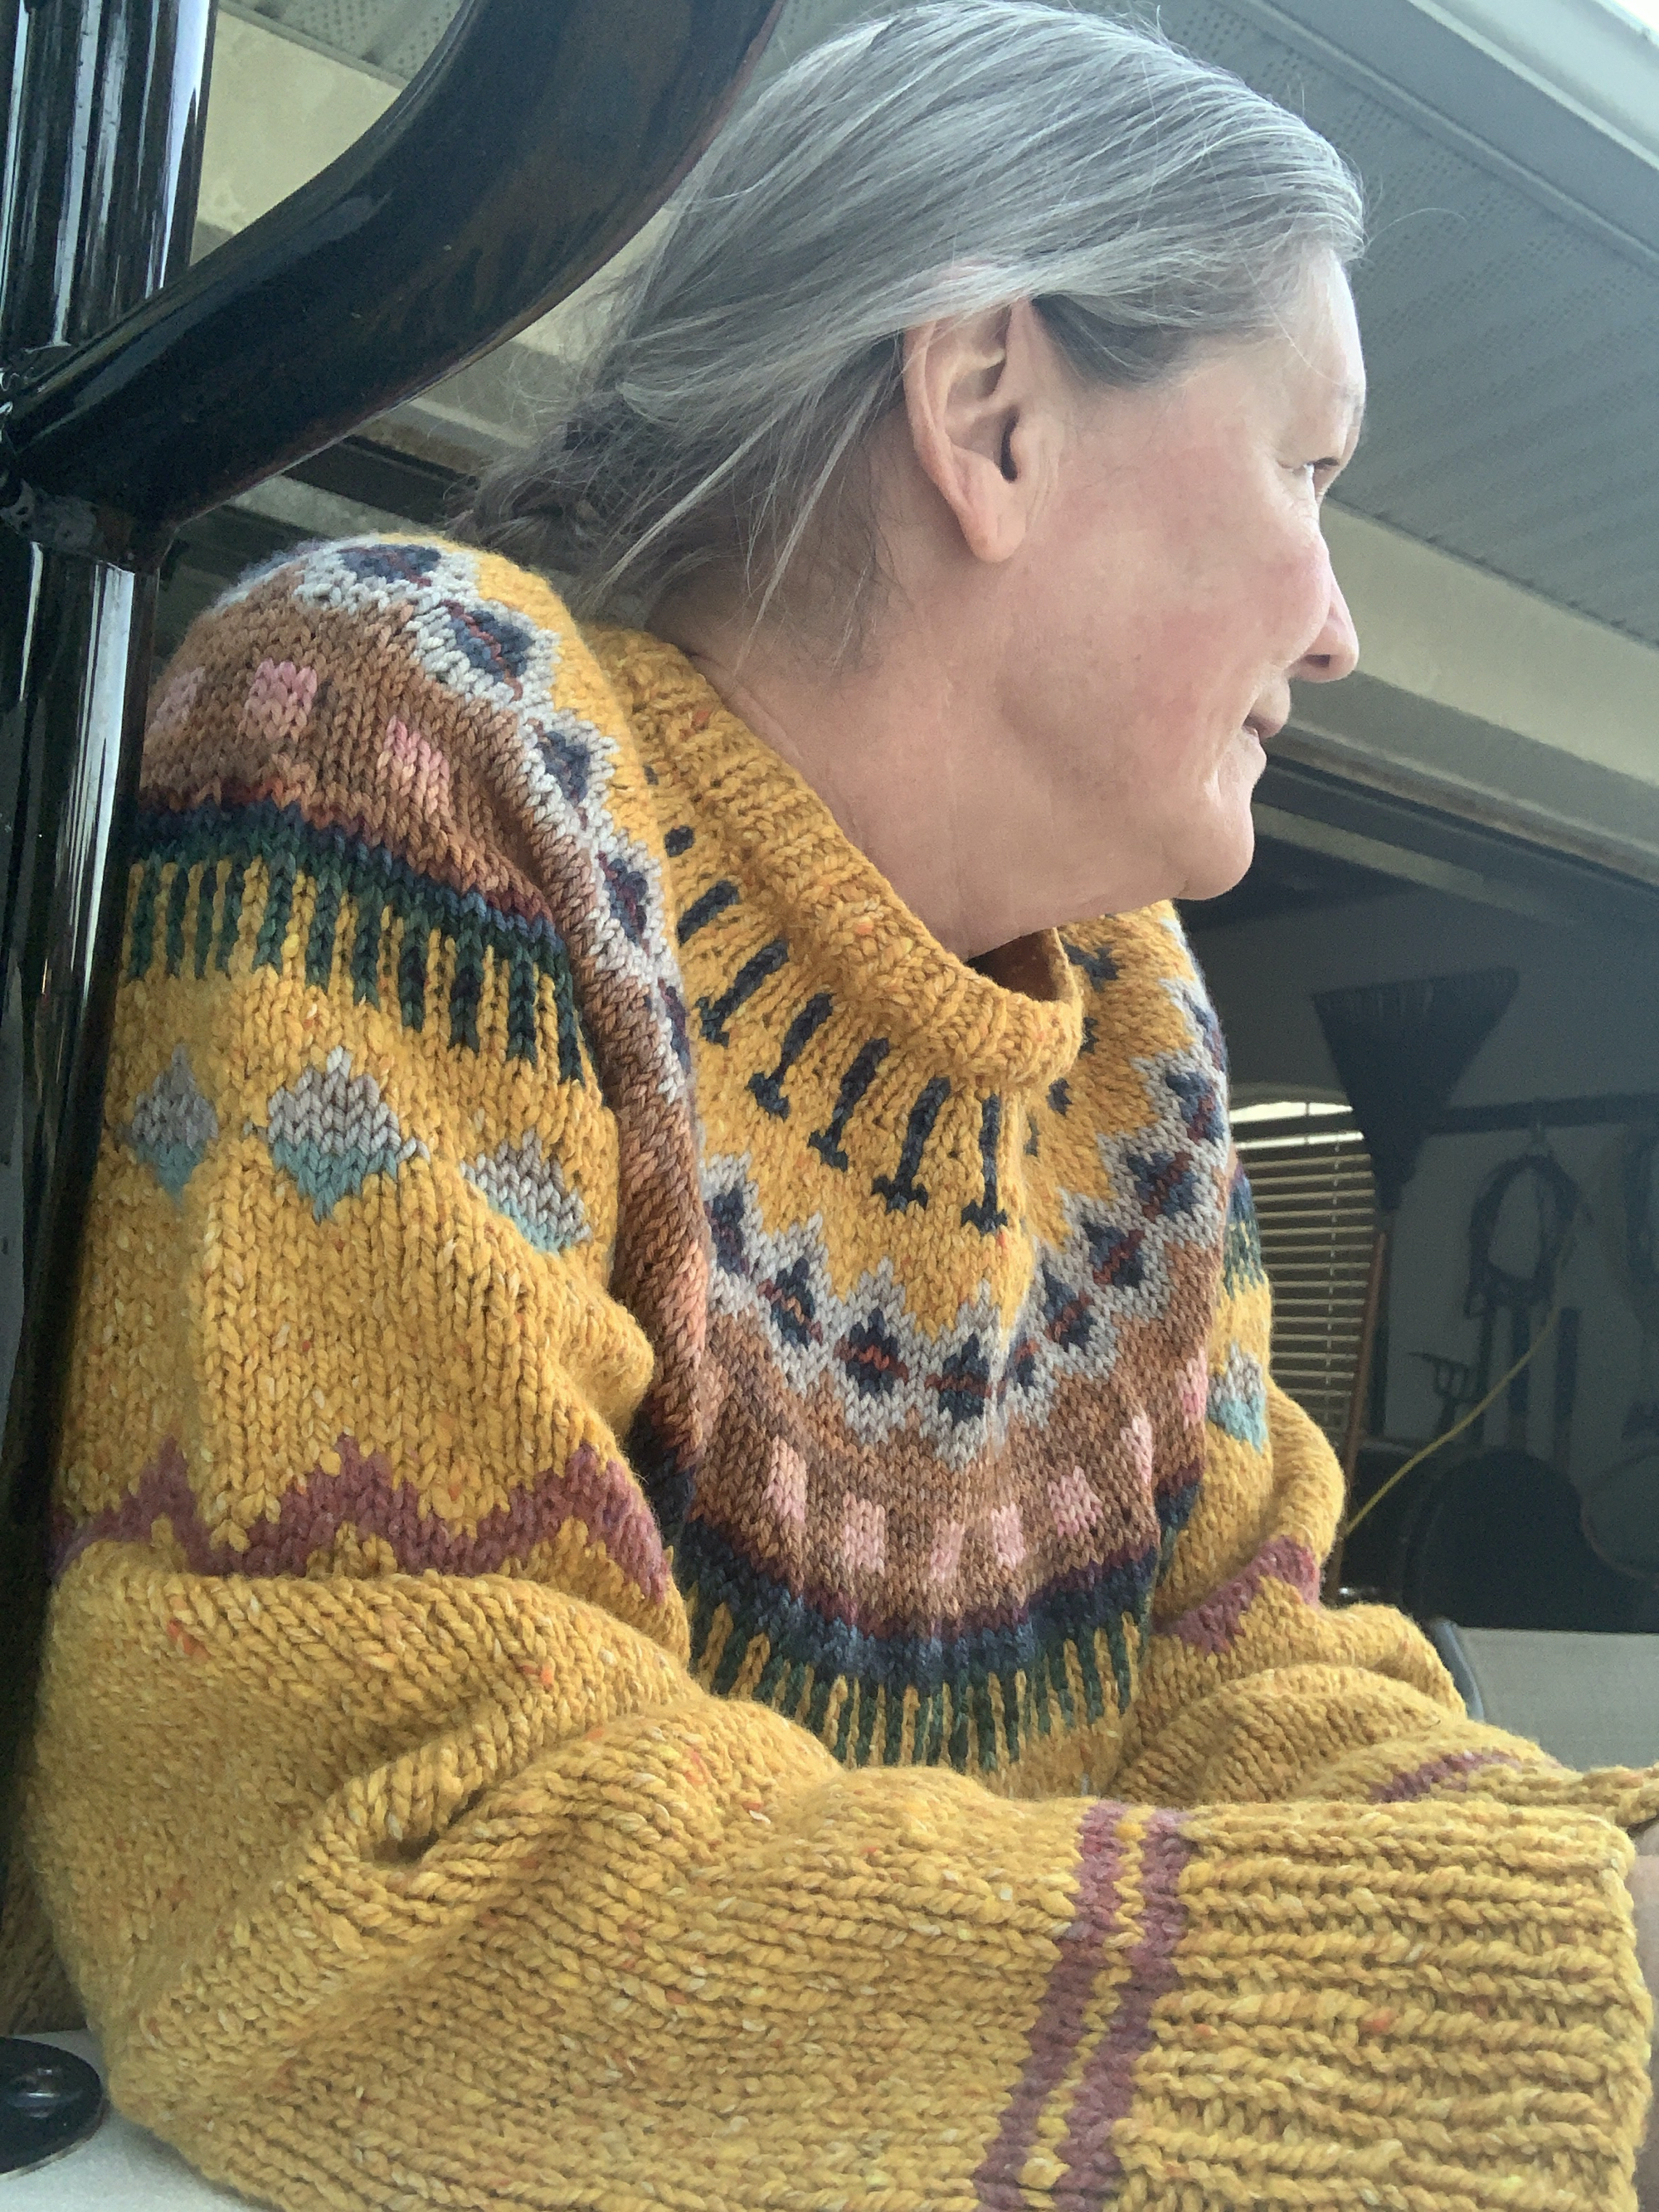 Knitting the Marshland Sweater